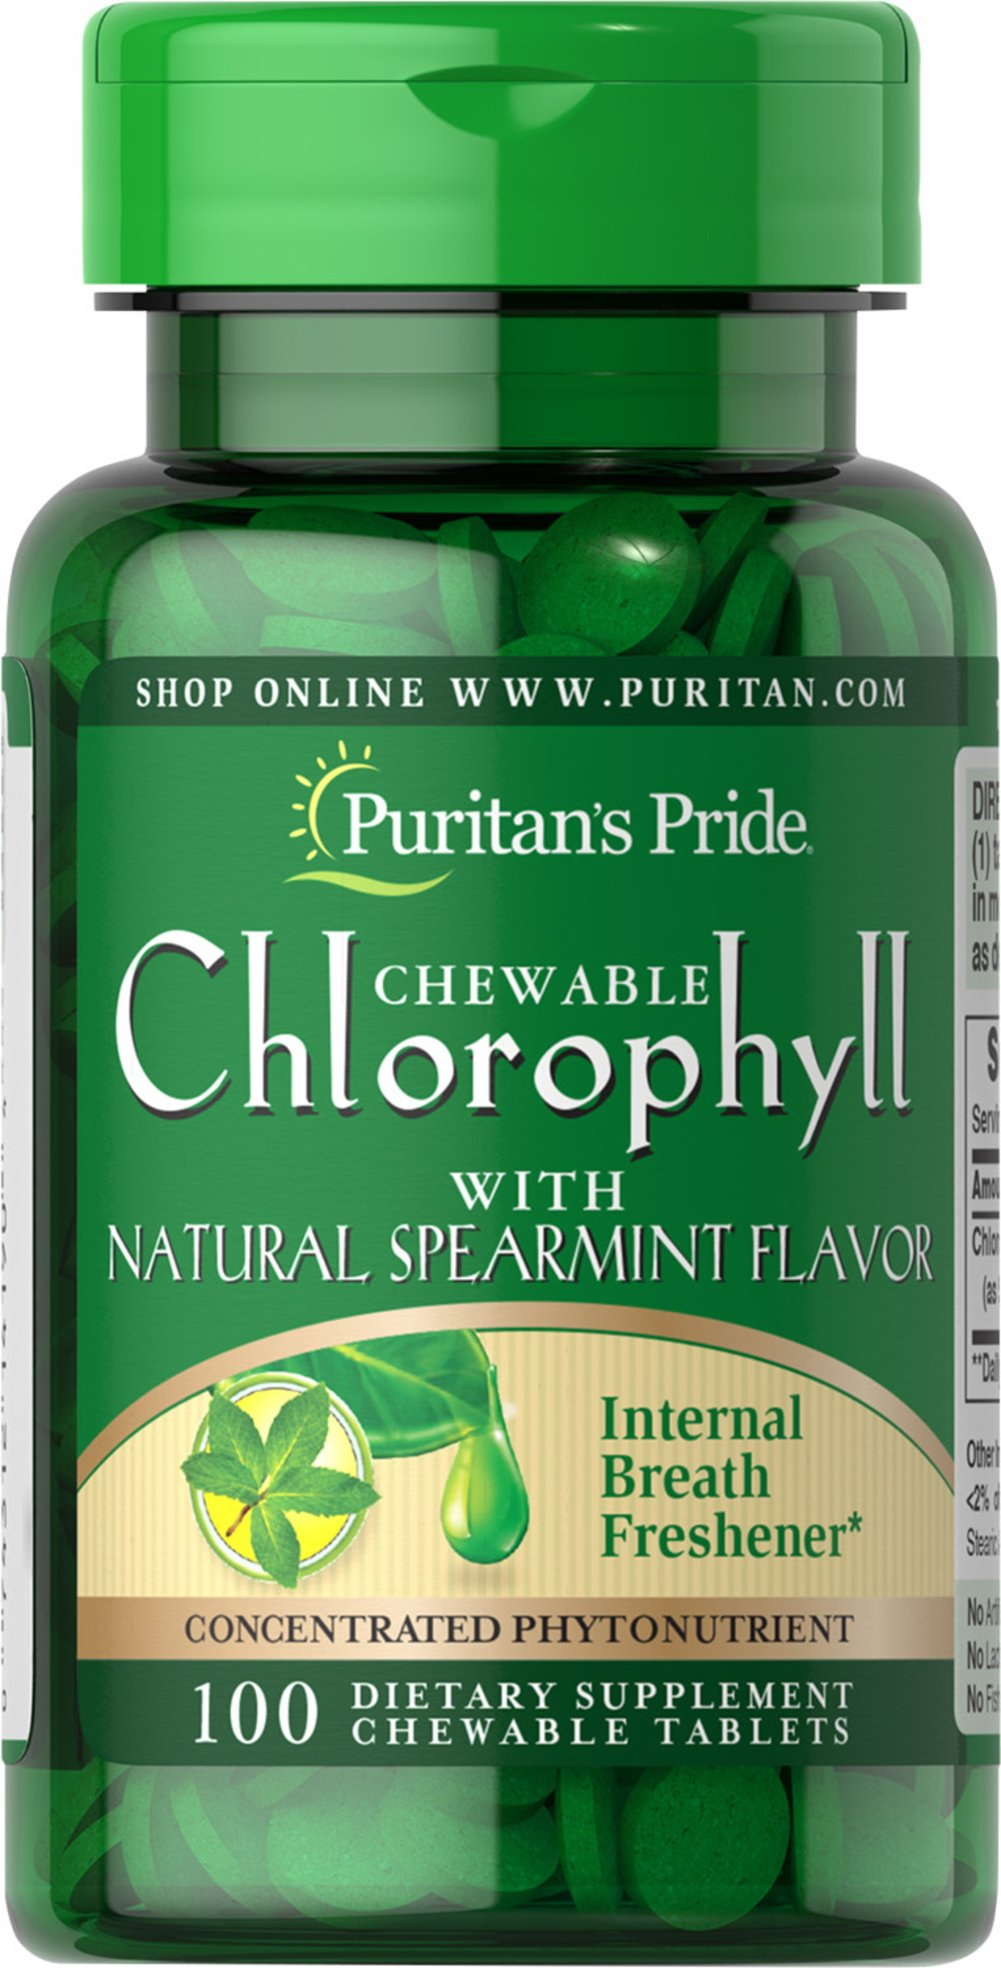 Chewable Chlorophyll with Natural Spearmint Flavor <p>These tablets contain natural chlorophyll and mint, two effective breath fresheners.  Use them as needed to prevent or stop odors caused by indigestion, dentures, smoking, alcohol, onions, garlic and other foods.</p> 100 Chewables 3 mg $4.49